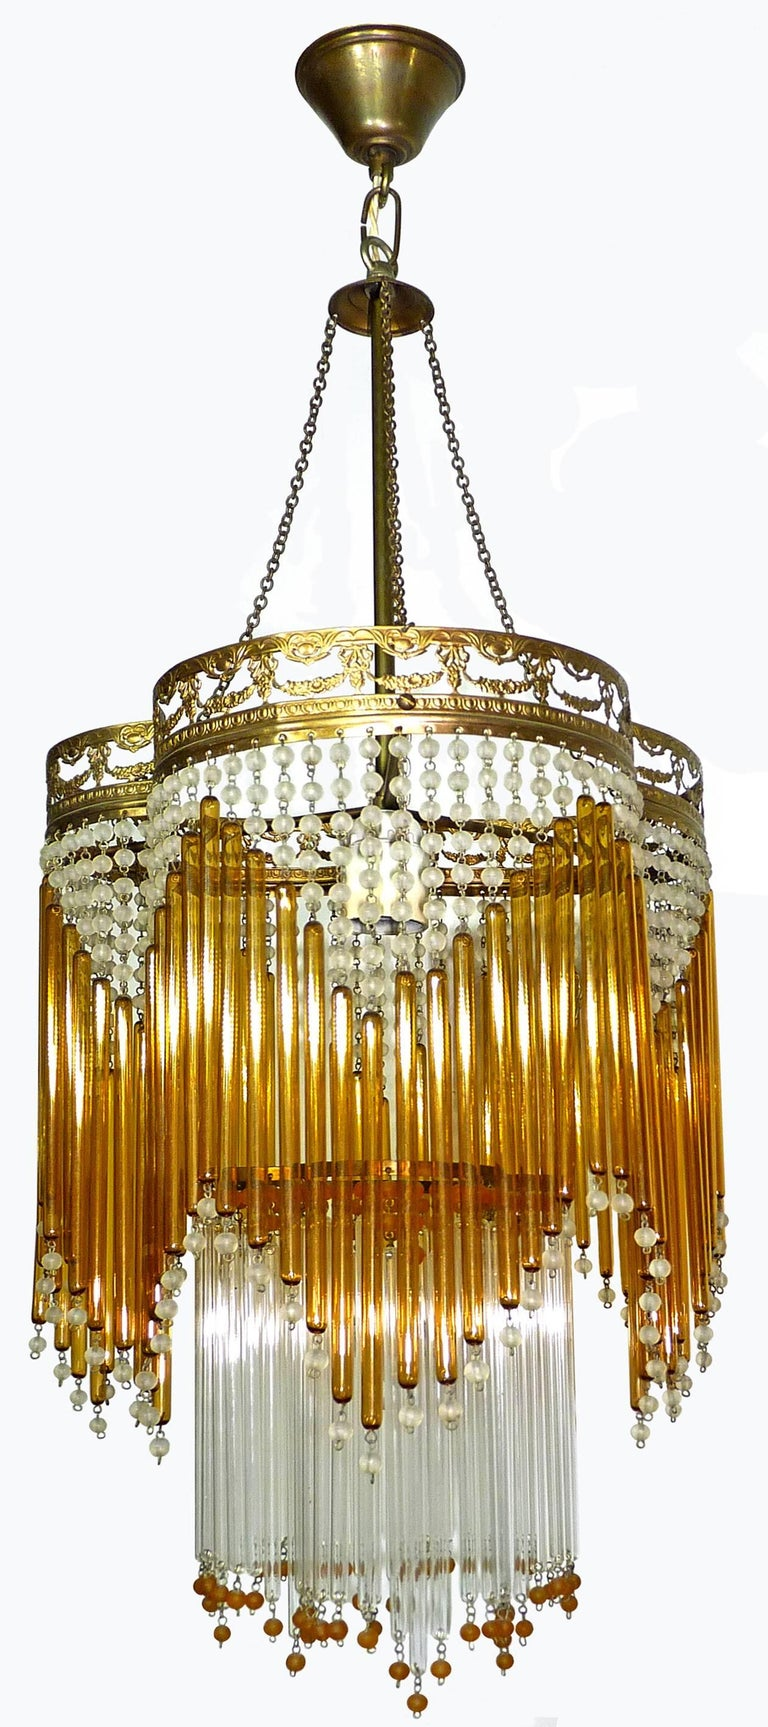 Italian Art Deco/Art Nouveau Amber and Clear Beaded Glass Murano Chandelier In Excellent Condition For Sale In Coimbra, PT